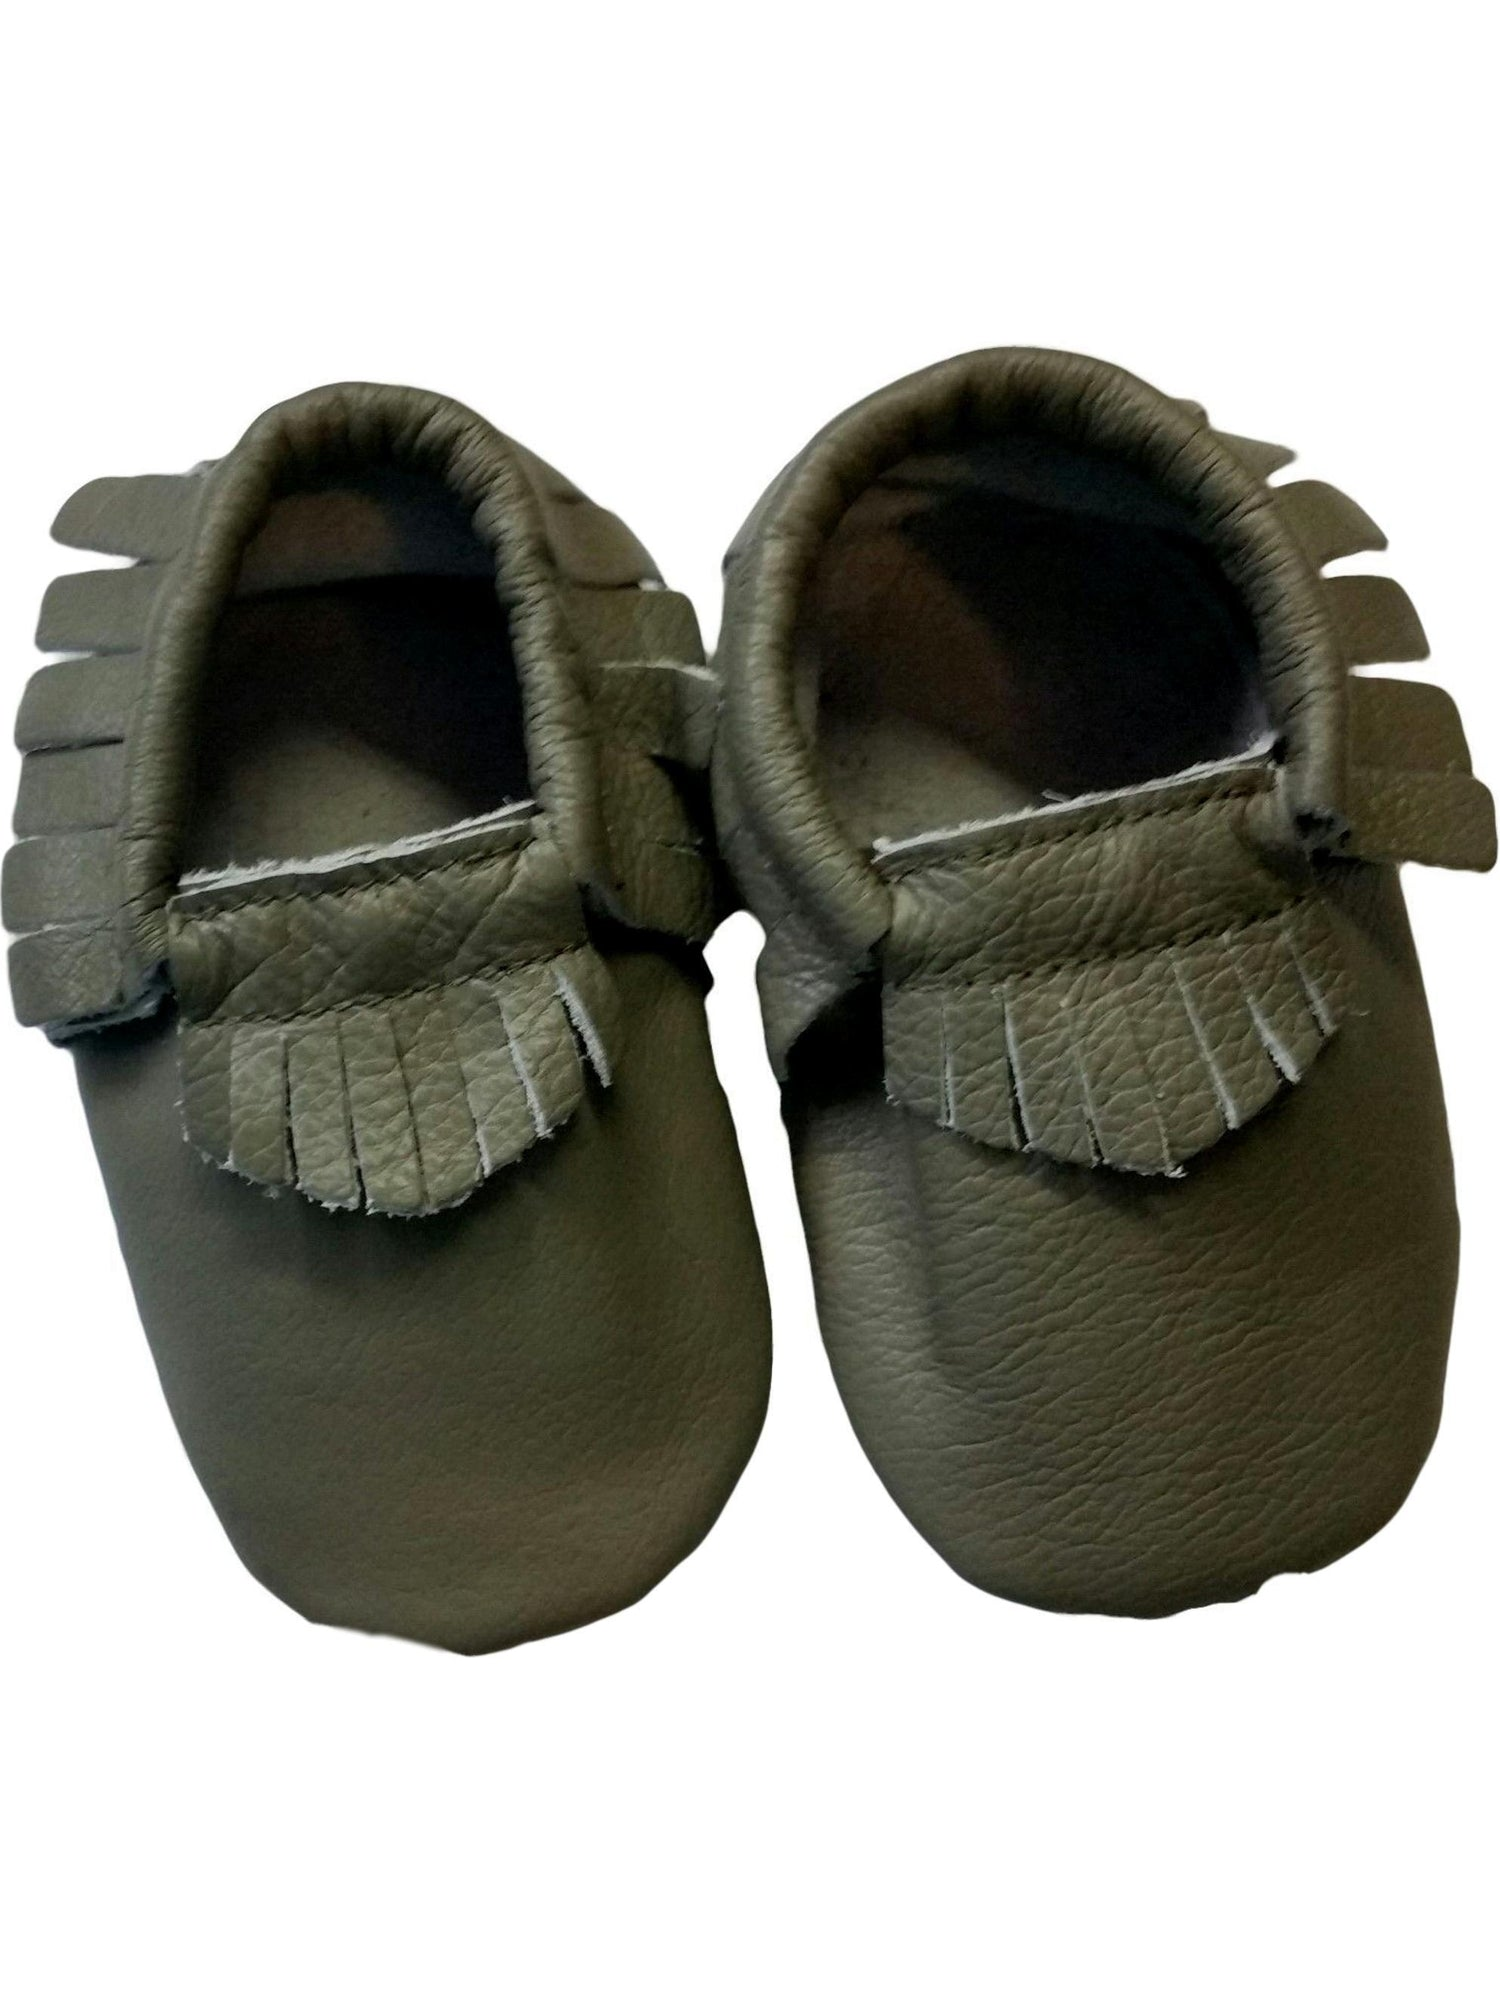 ... Baby Leather Moccasins, Dark Green BABY SHOES Candy 0 3 Mth ...